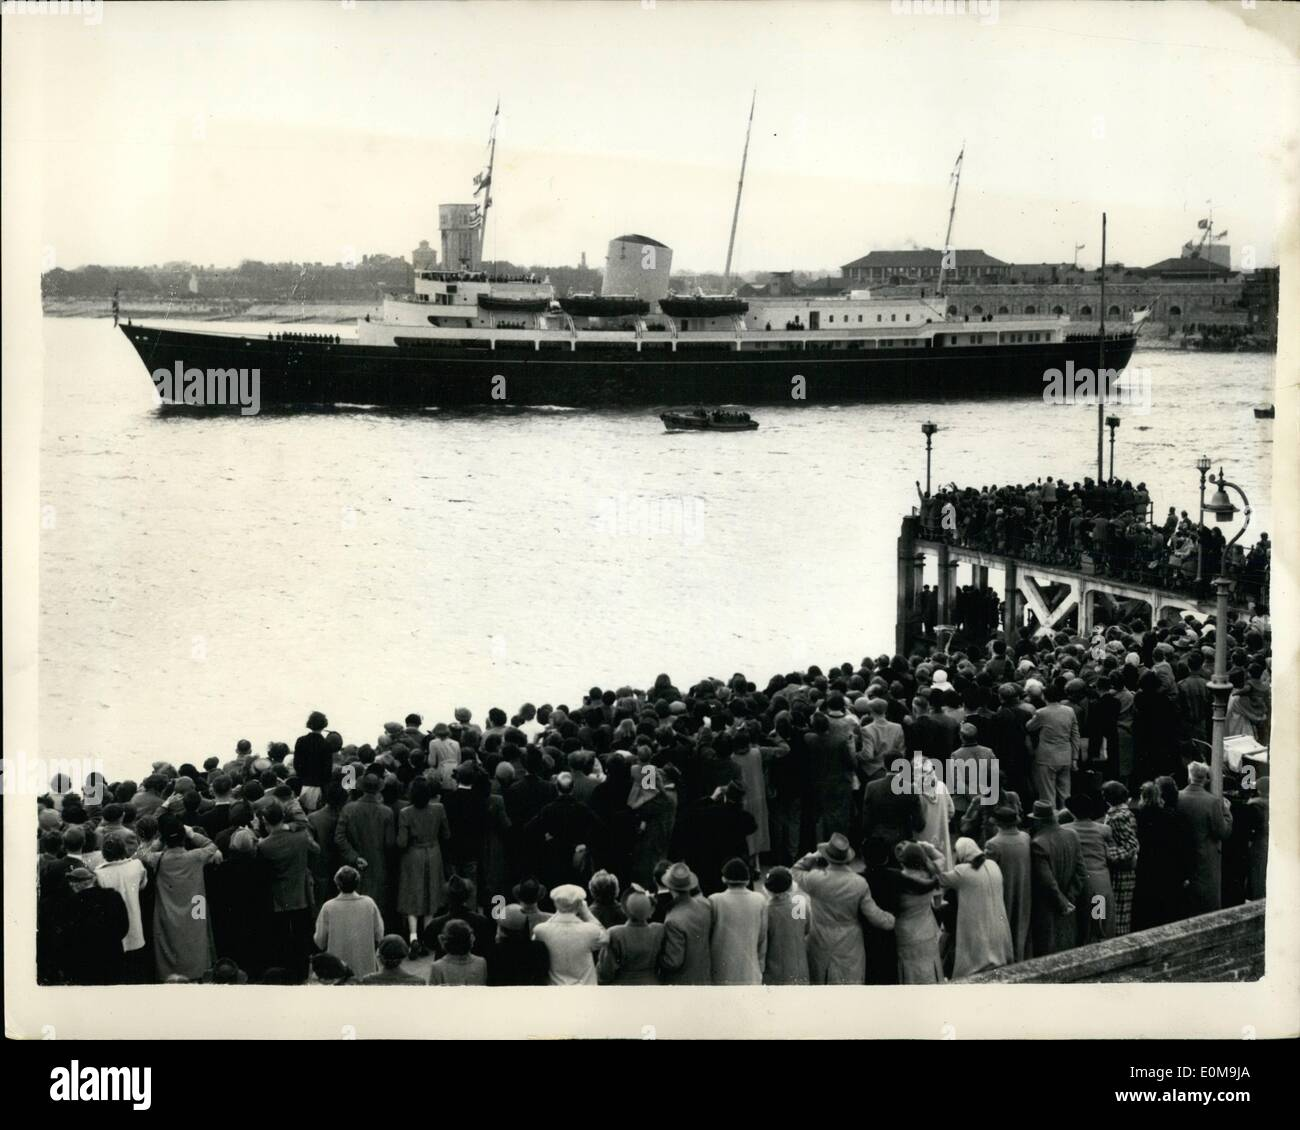 Apr. 04, 1954 - The Royal children leave Portsmouth for Tobruk, crowds wave farewell. Prince Charles and Princess Stock Photo